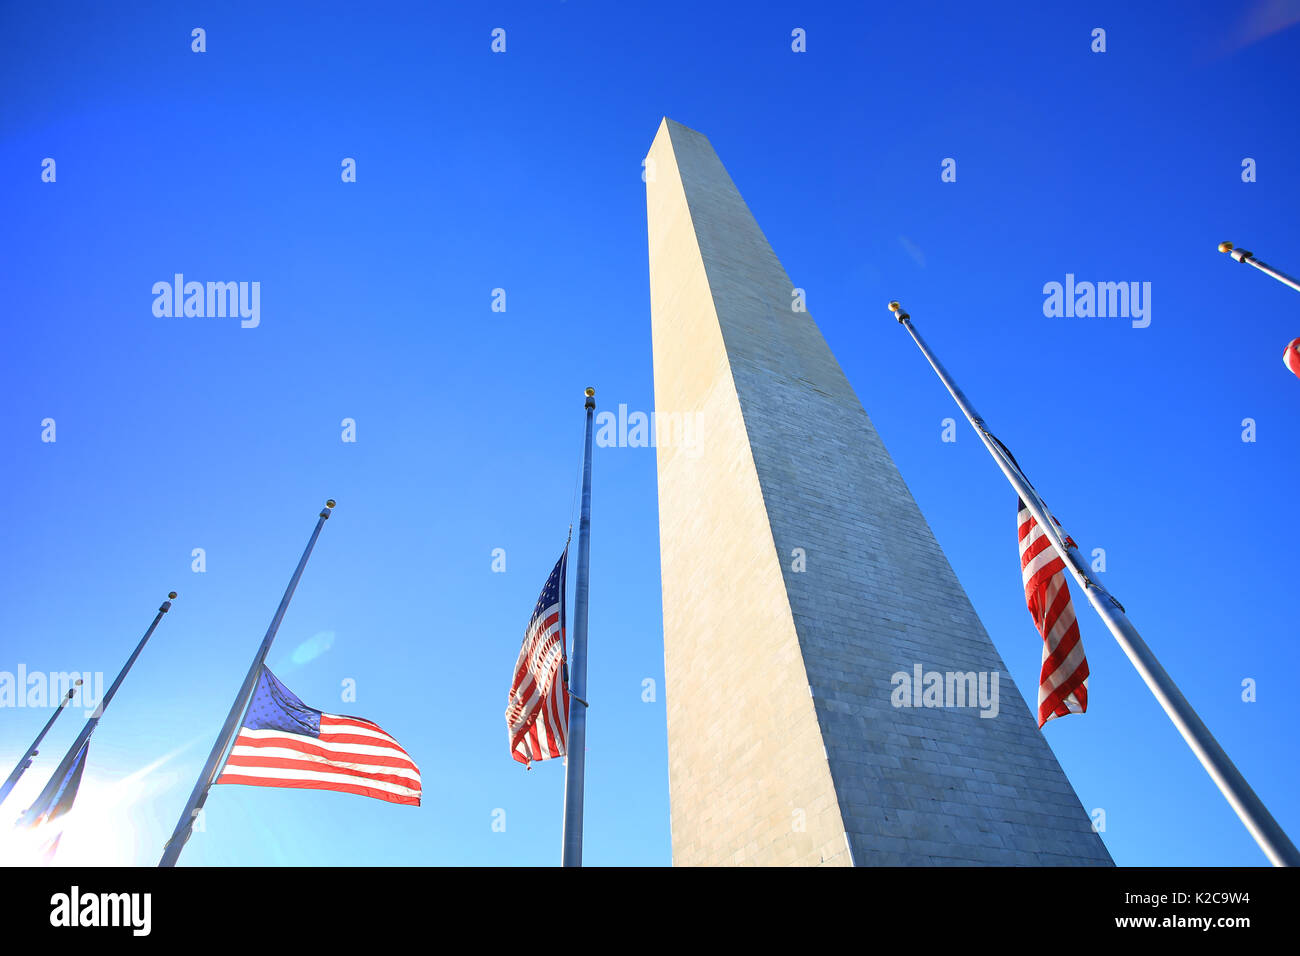 Washington monument in washington - Stock Image